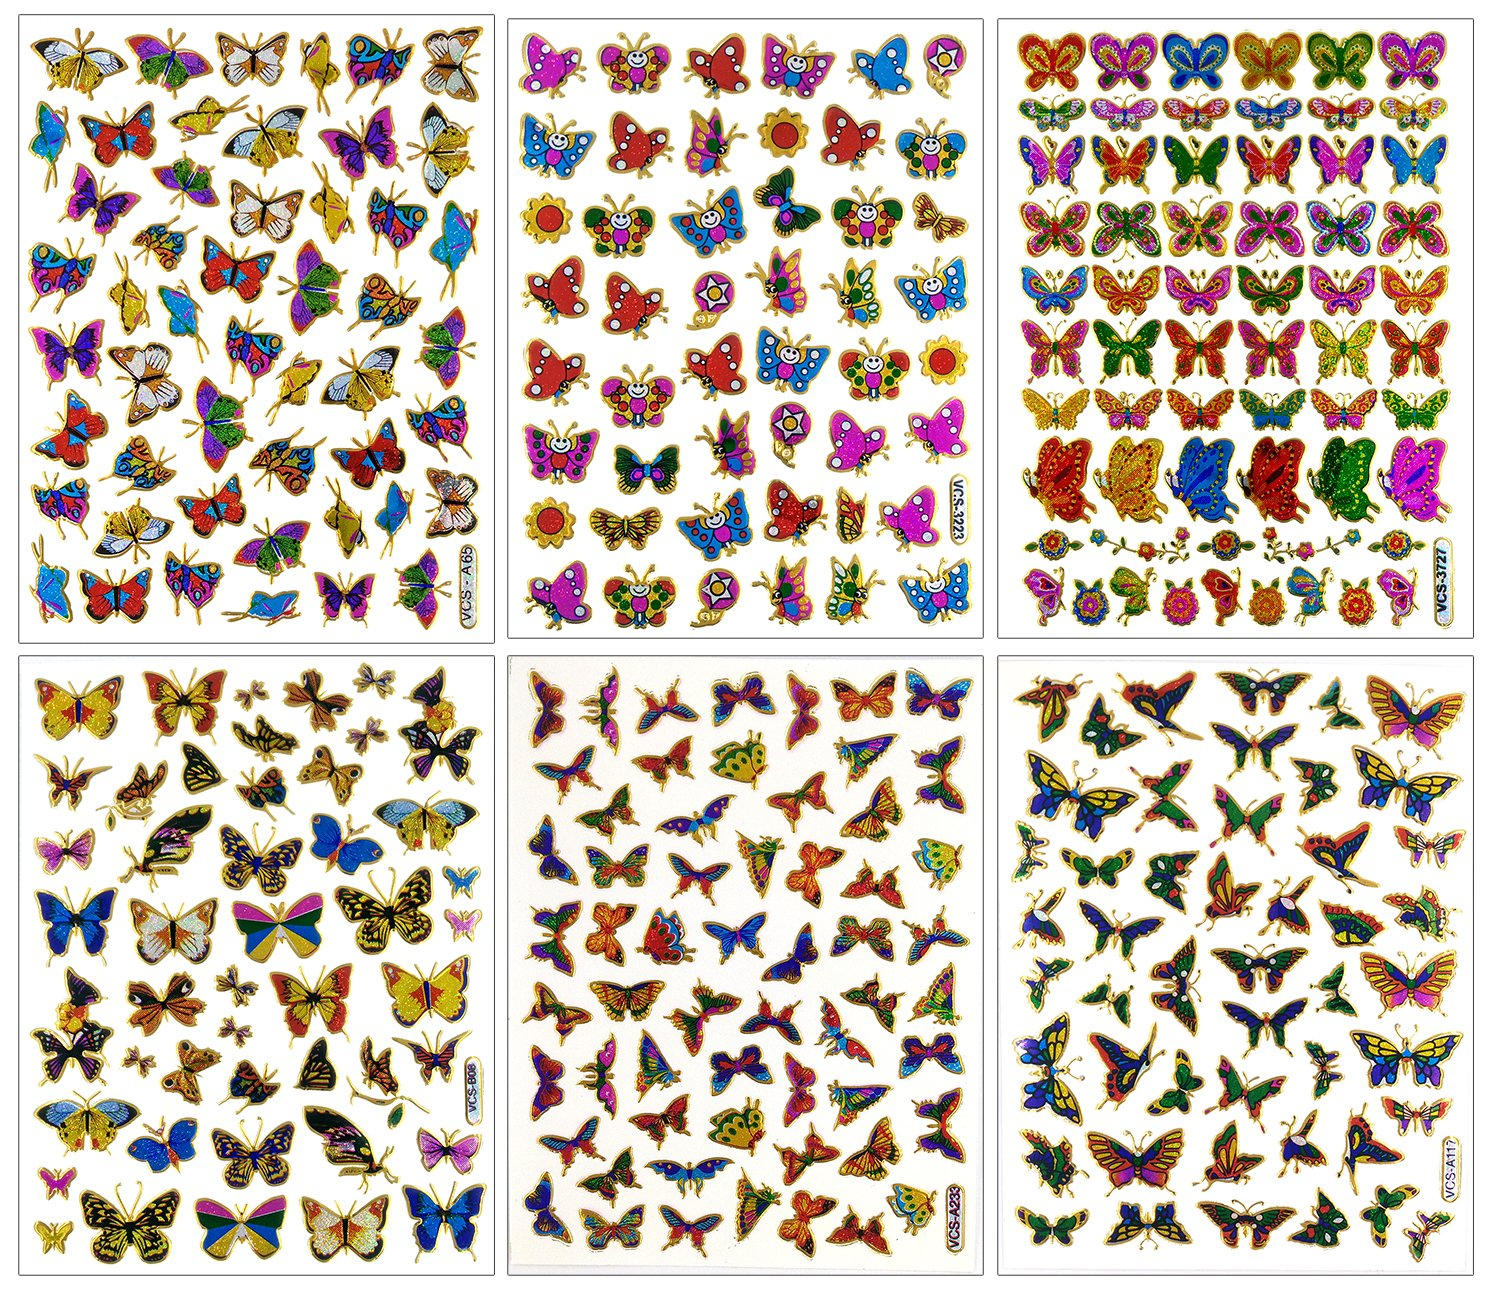 Butterfly003 - 6 Different Sheet Butterfly Glitter Gold Metallic Foil Reflective Craft Self-adhesive Sticker Decorative Scrapbook for Kid, Birthday Party, Card, Diary, Album Sticker108